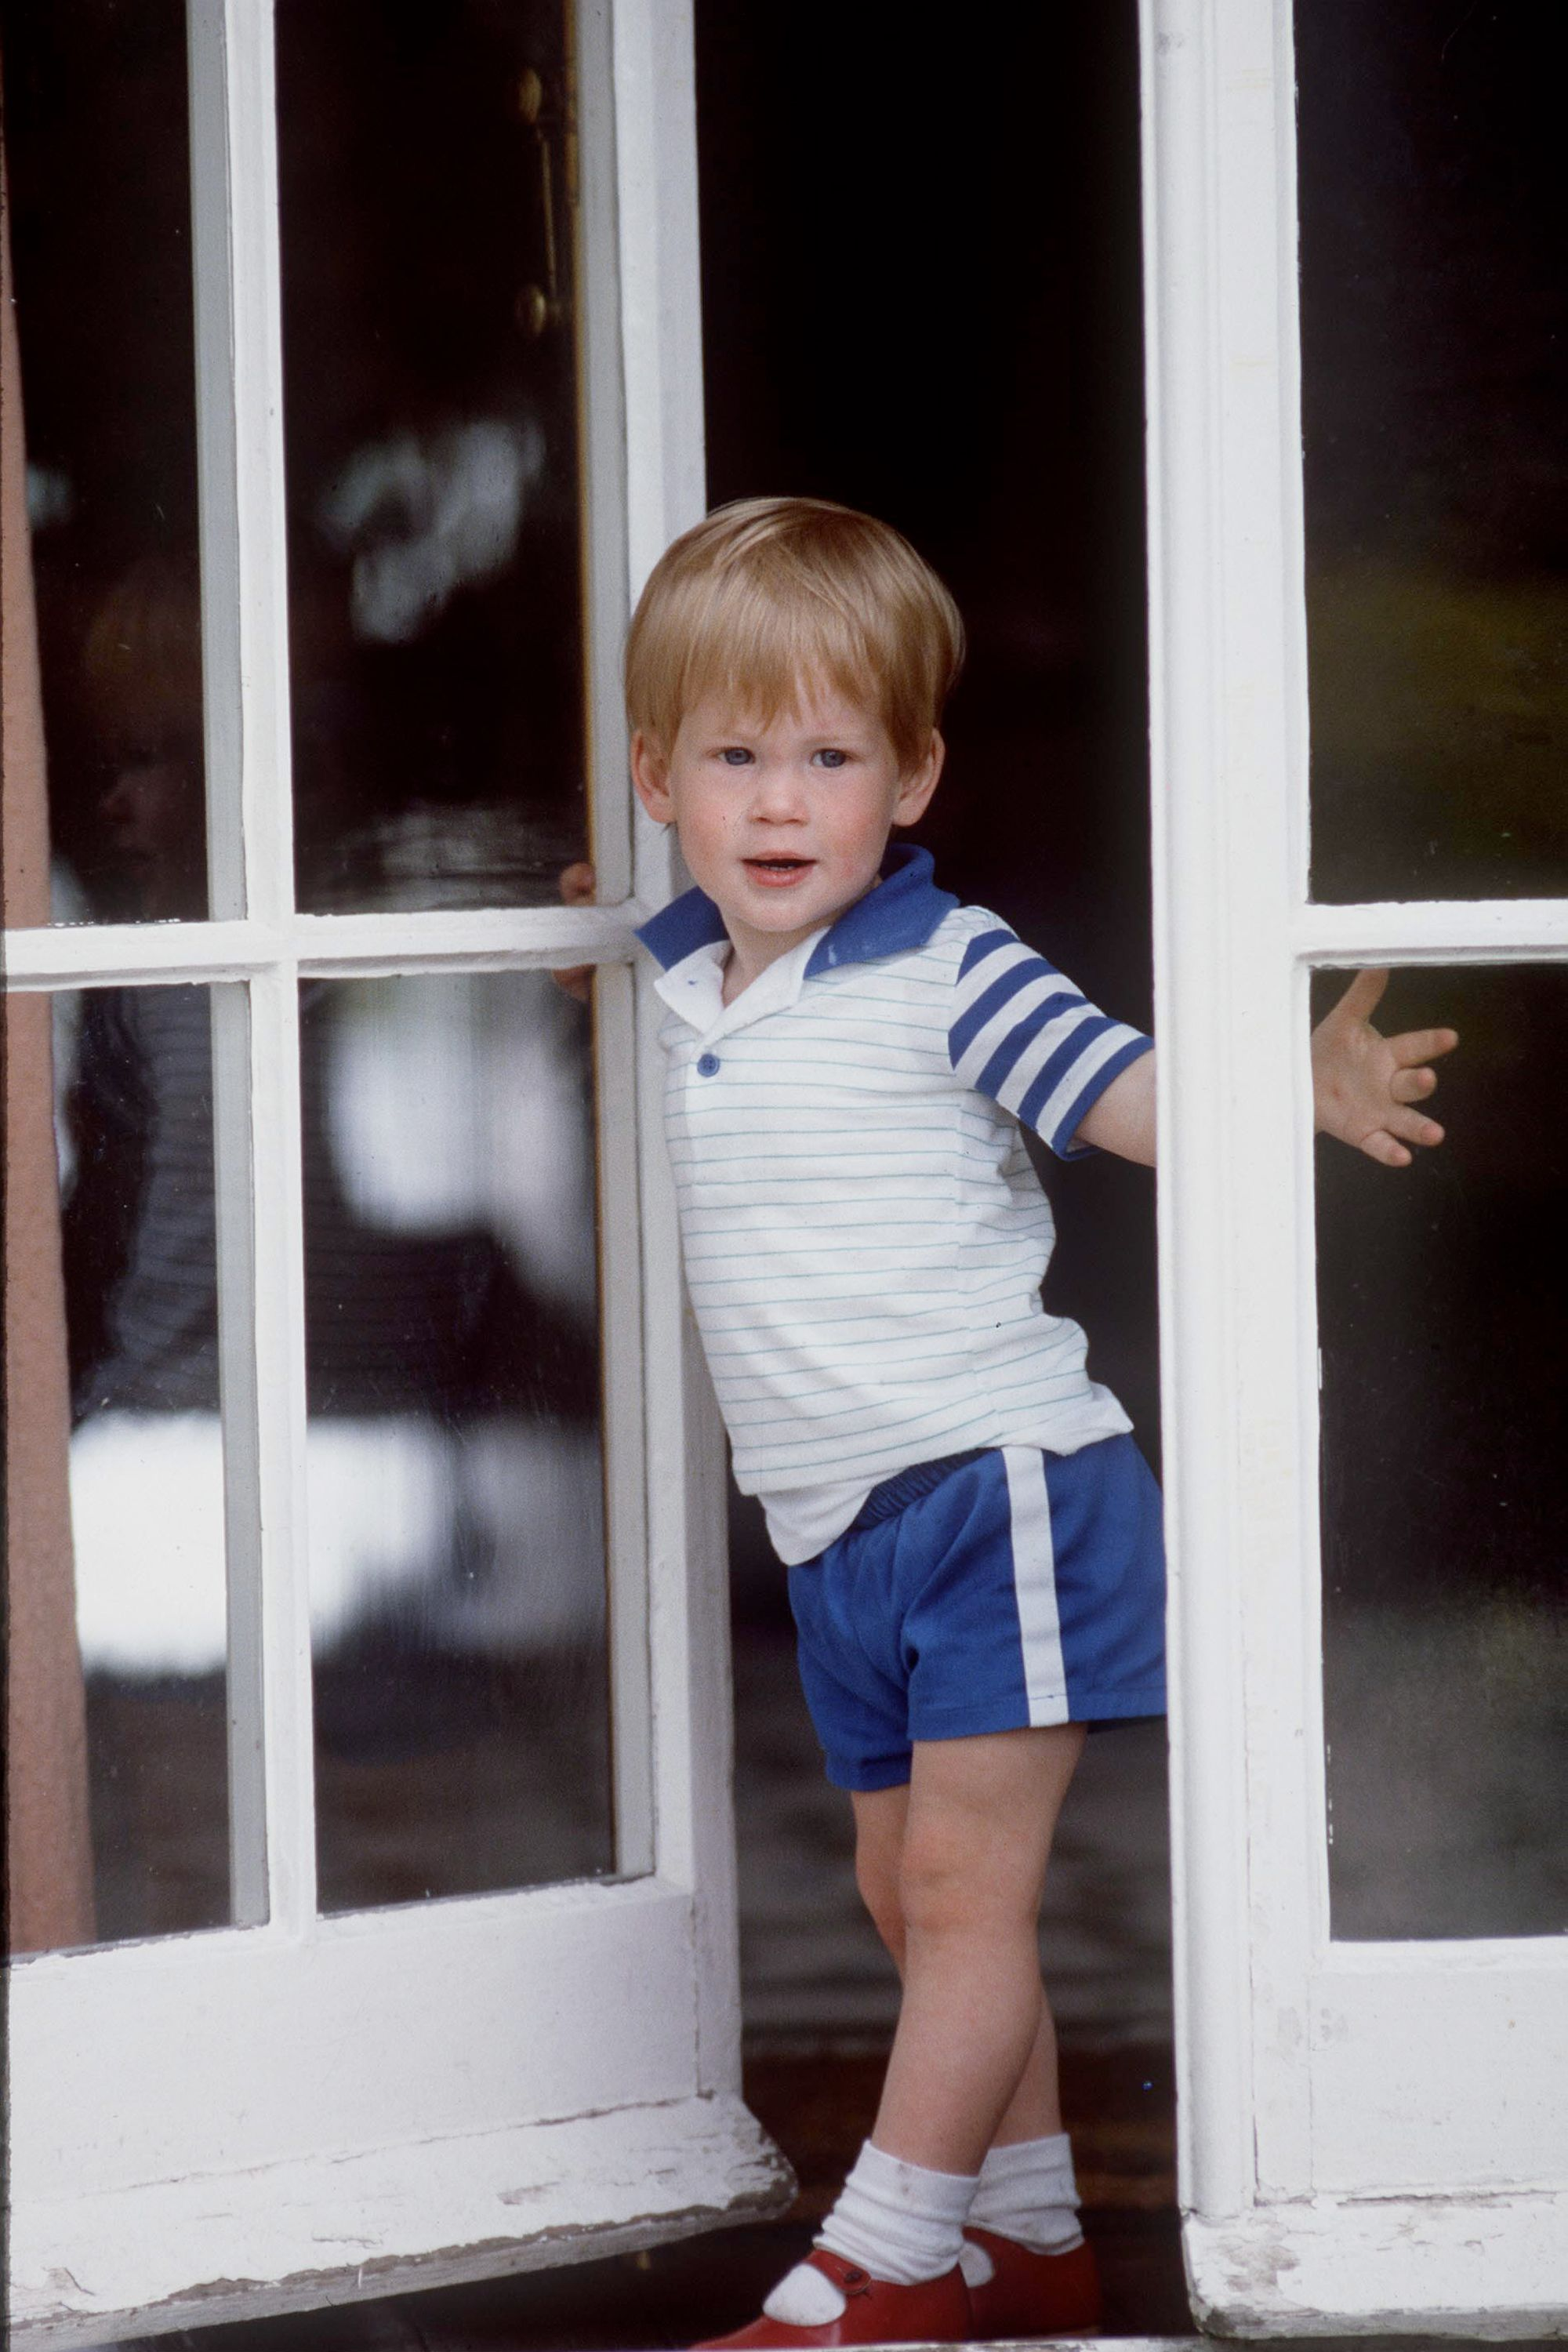 prince william and prince harry s childhood in photos prince william and prince harry s